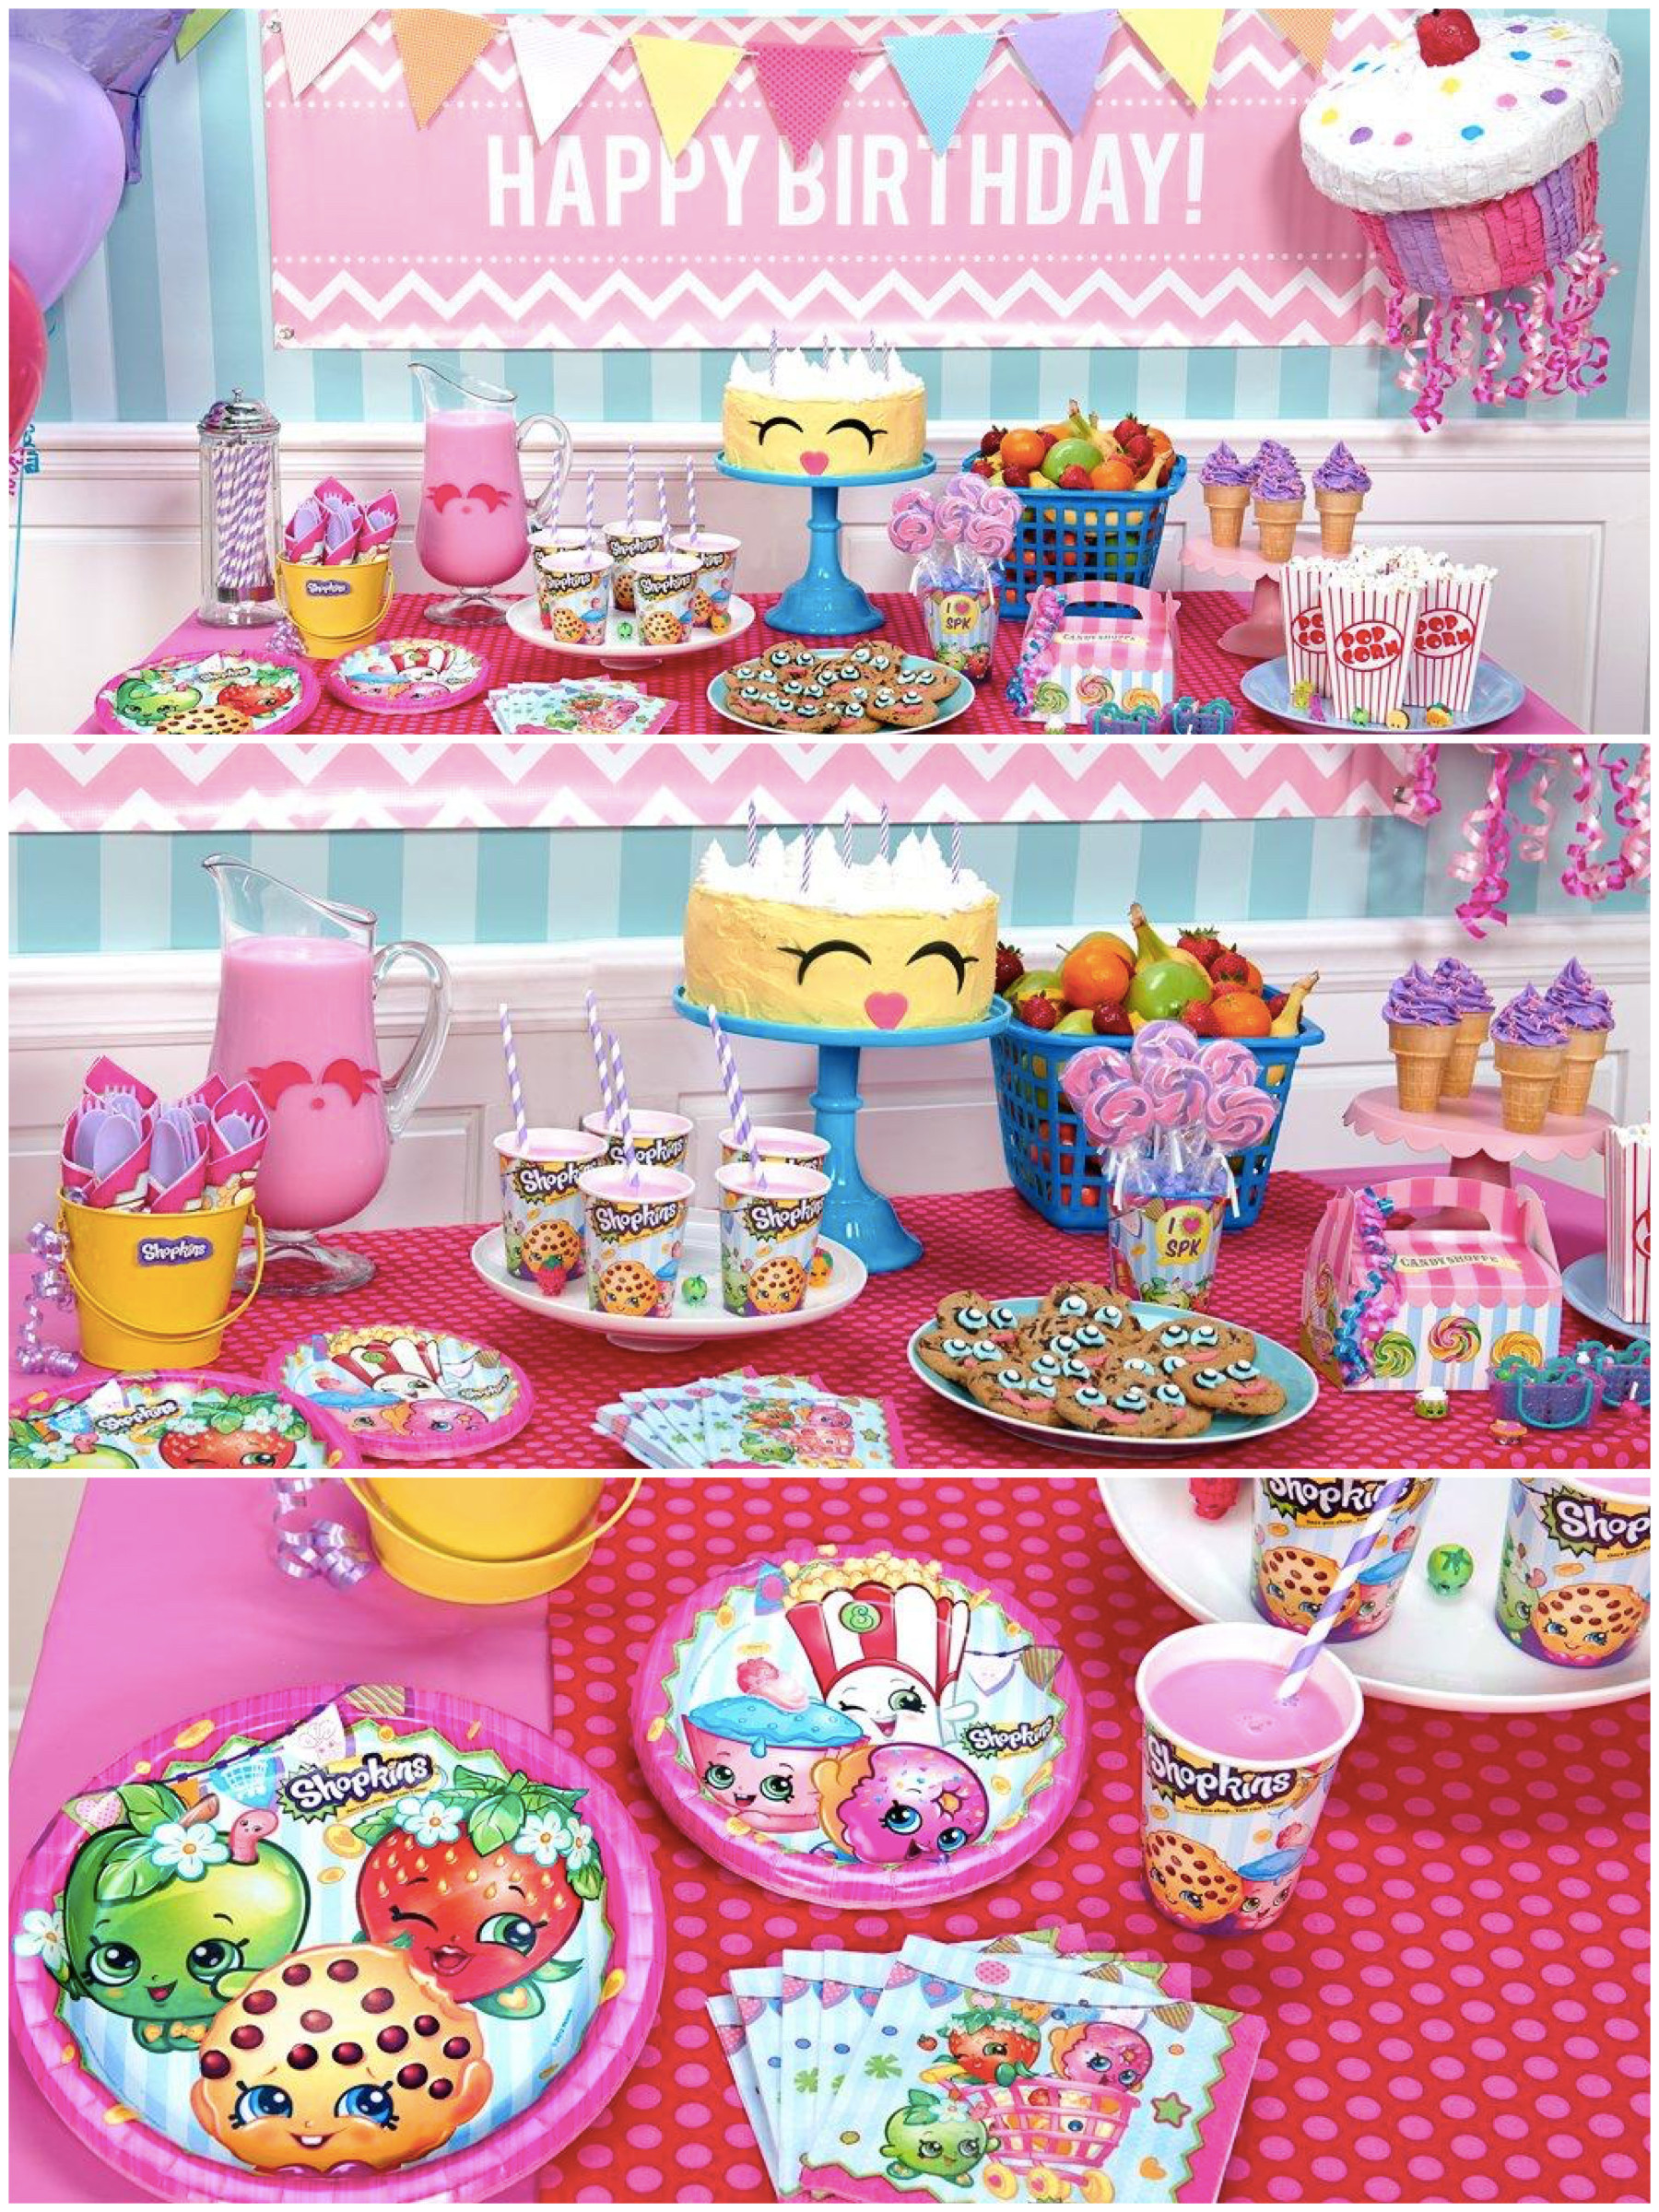 Best ideas about Shopkins Birthday Decorations . Save or Pin Shopkins Birthday Party Planning Ideas & Supplies Now.